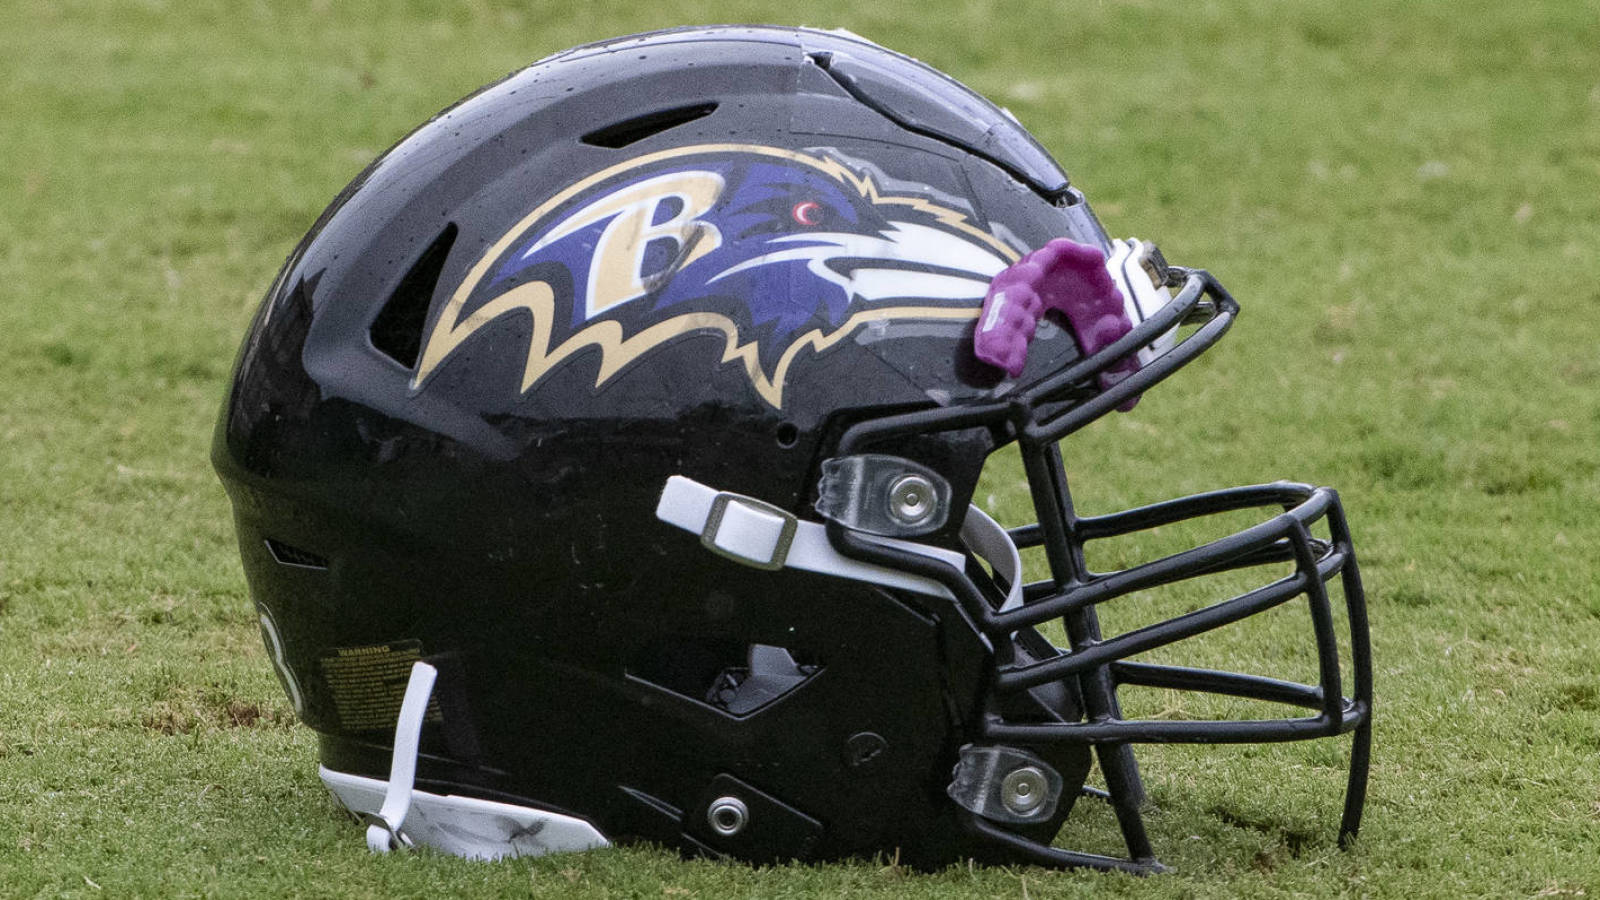 Report: NFL fines Ravens 0K for COVID-19 violations